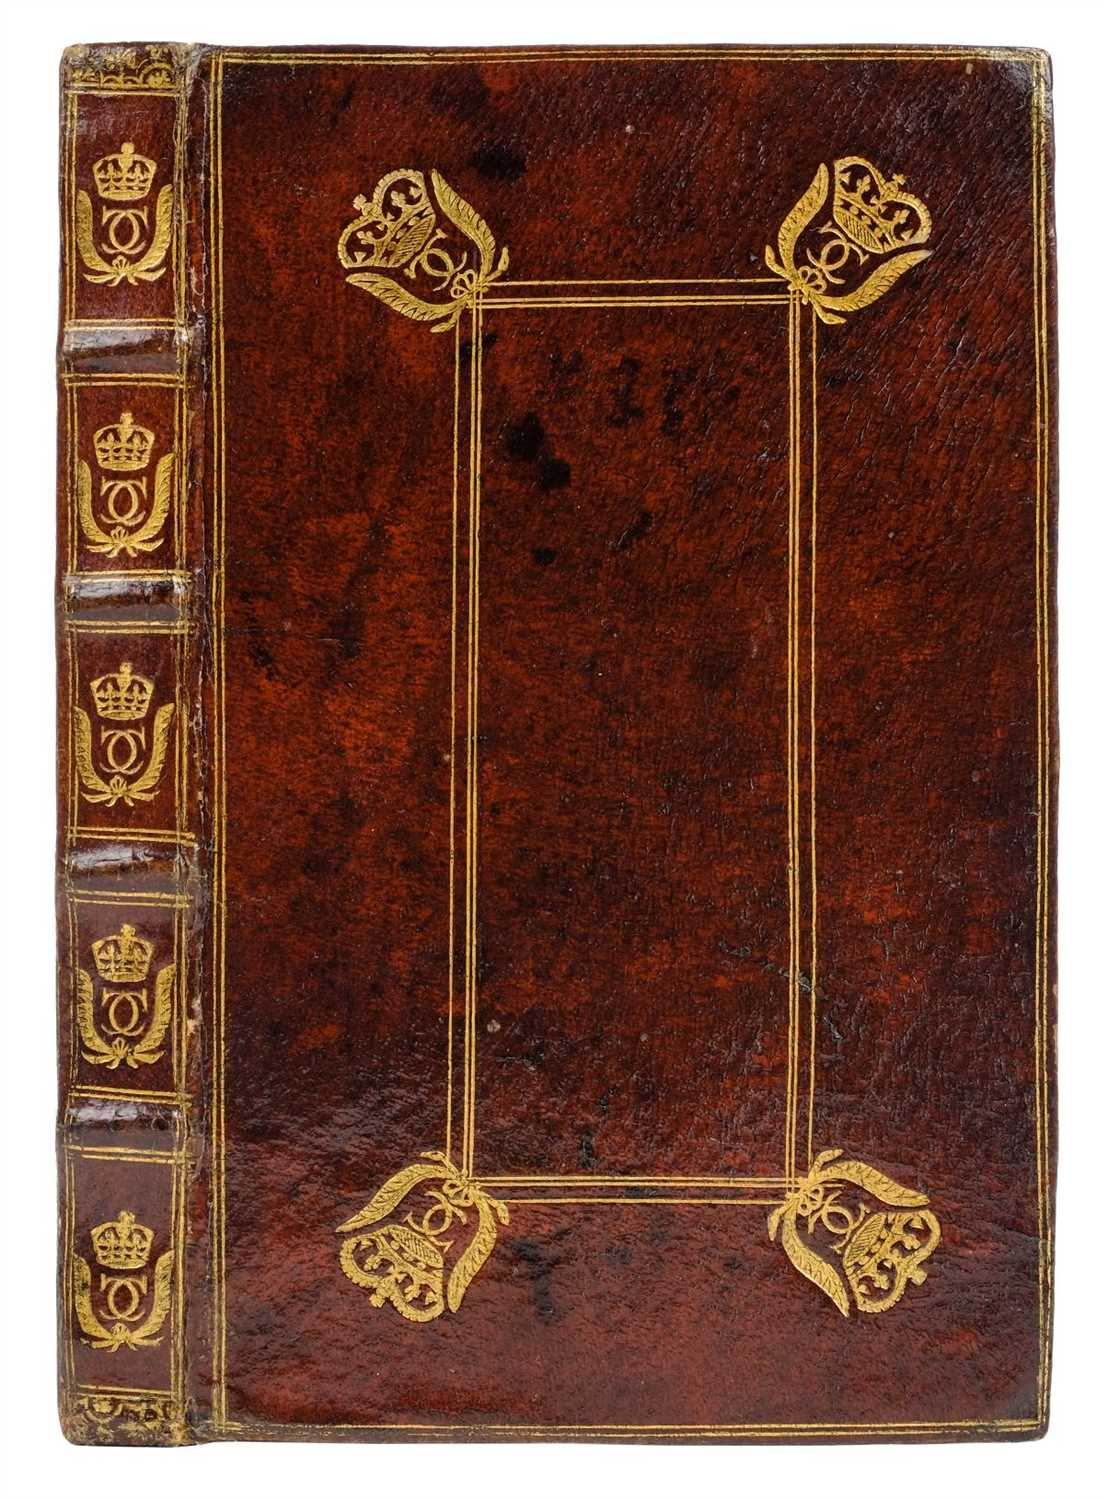 Lot 60-Royal binding. English Military Discipline, 2nd edition, 1678